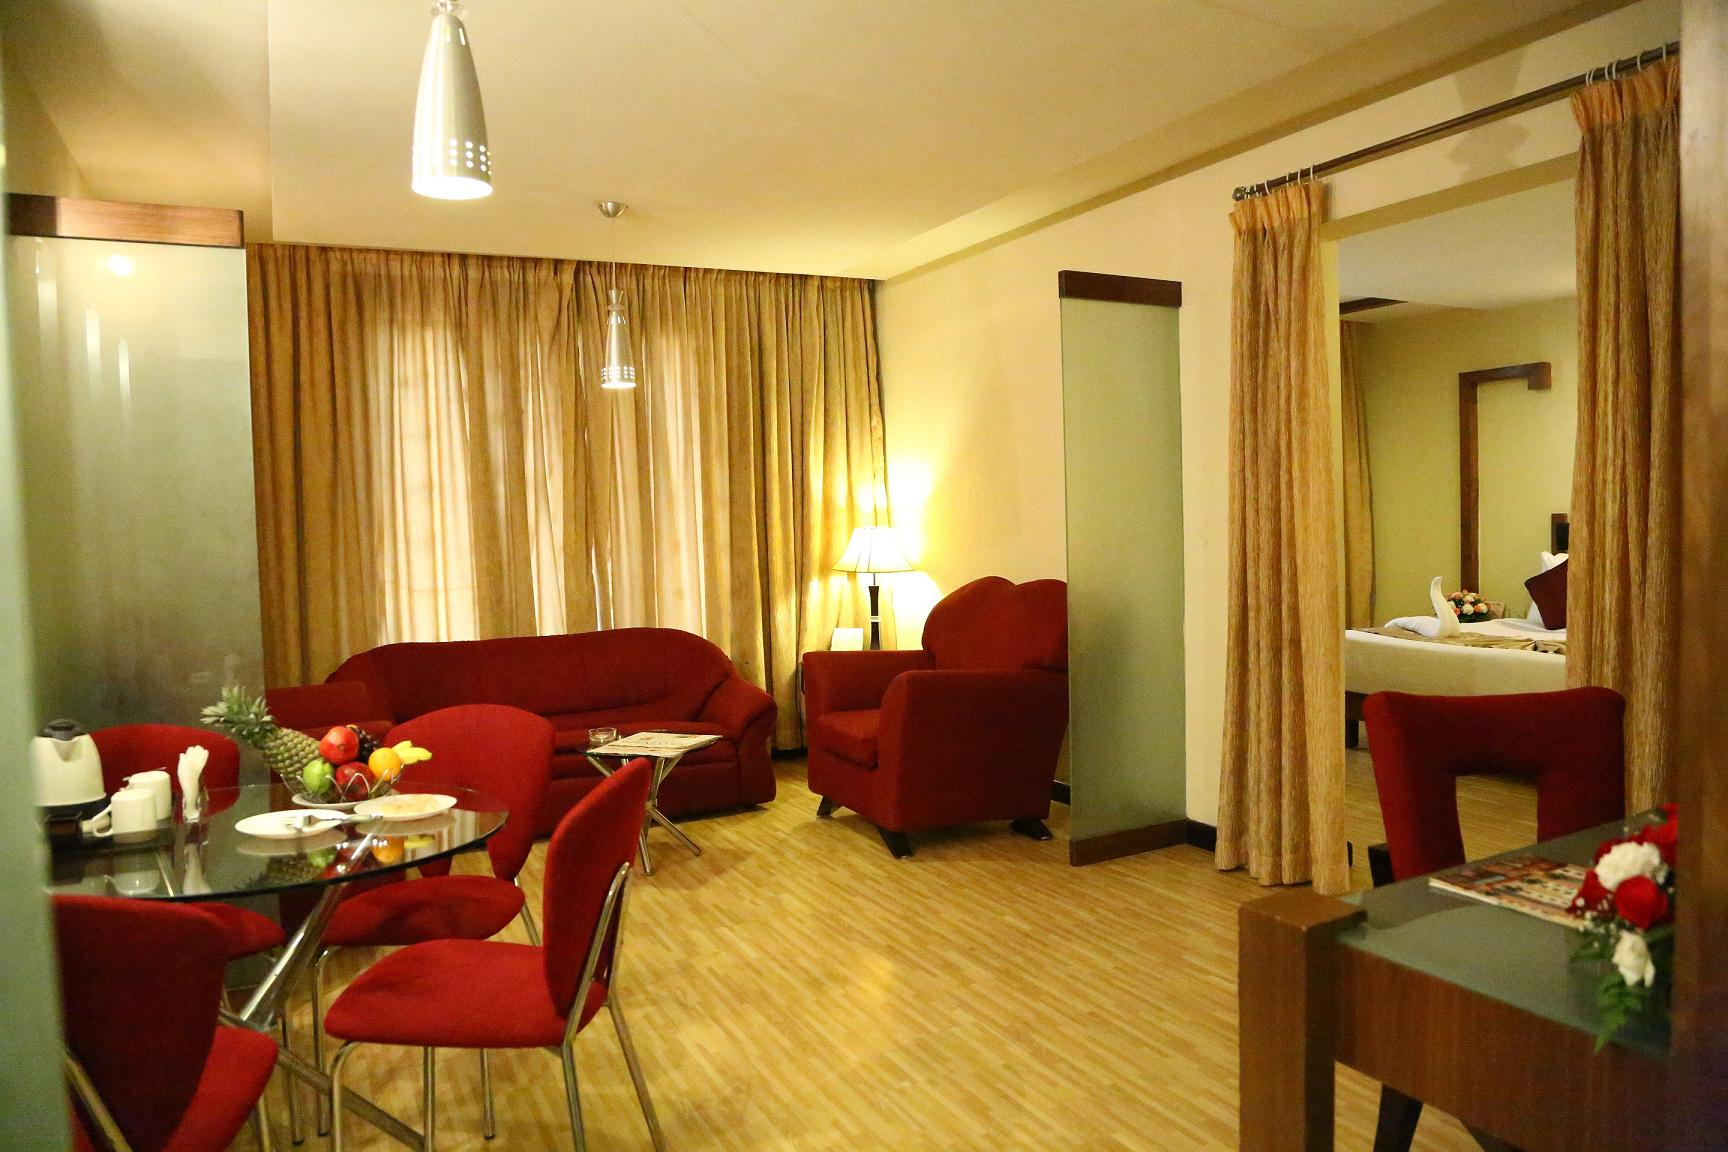 Suitr Room 2